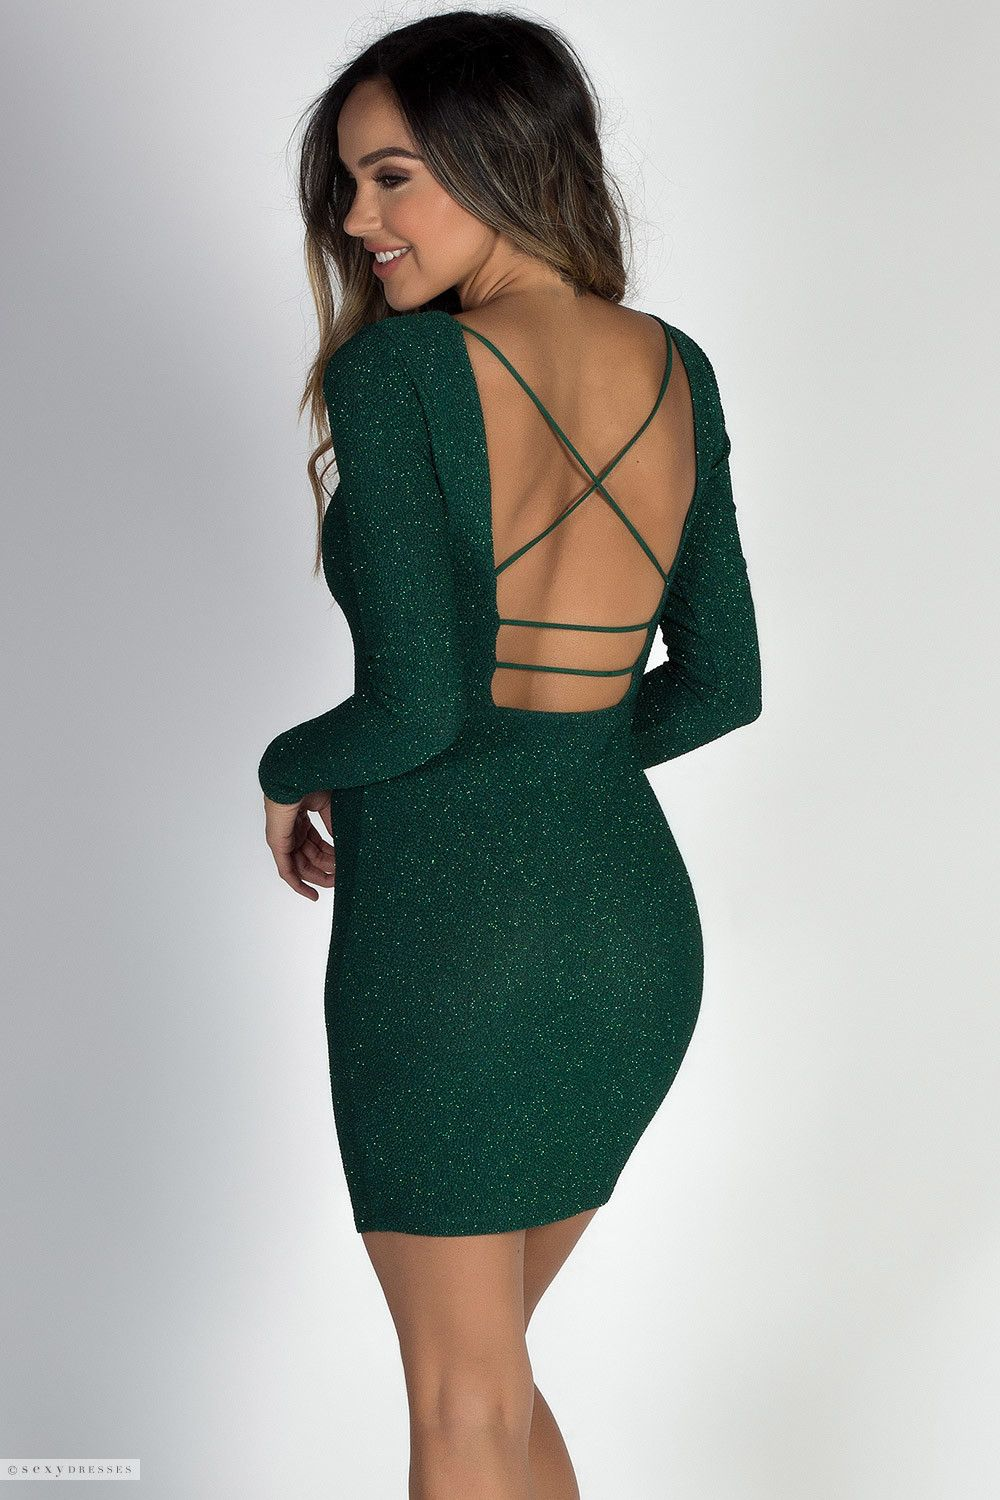 Bodycon Sparkly Green Glitter Mini Dress with Long Sleeves   Open Strappy  Back Cut Out 86af83351